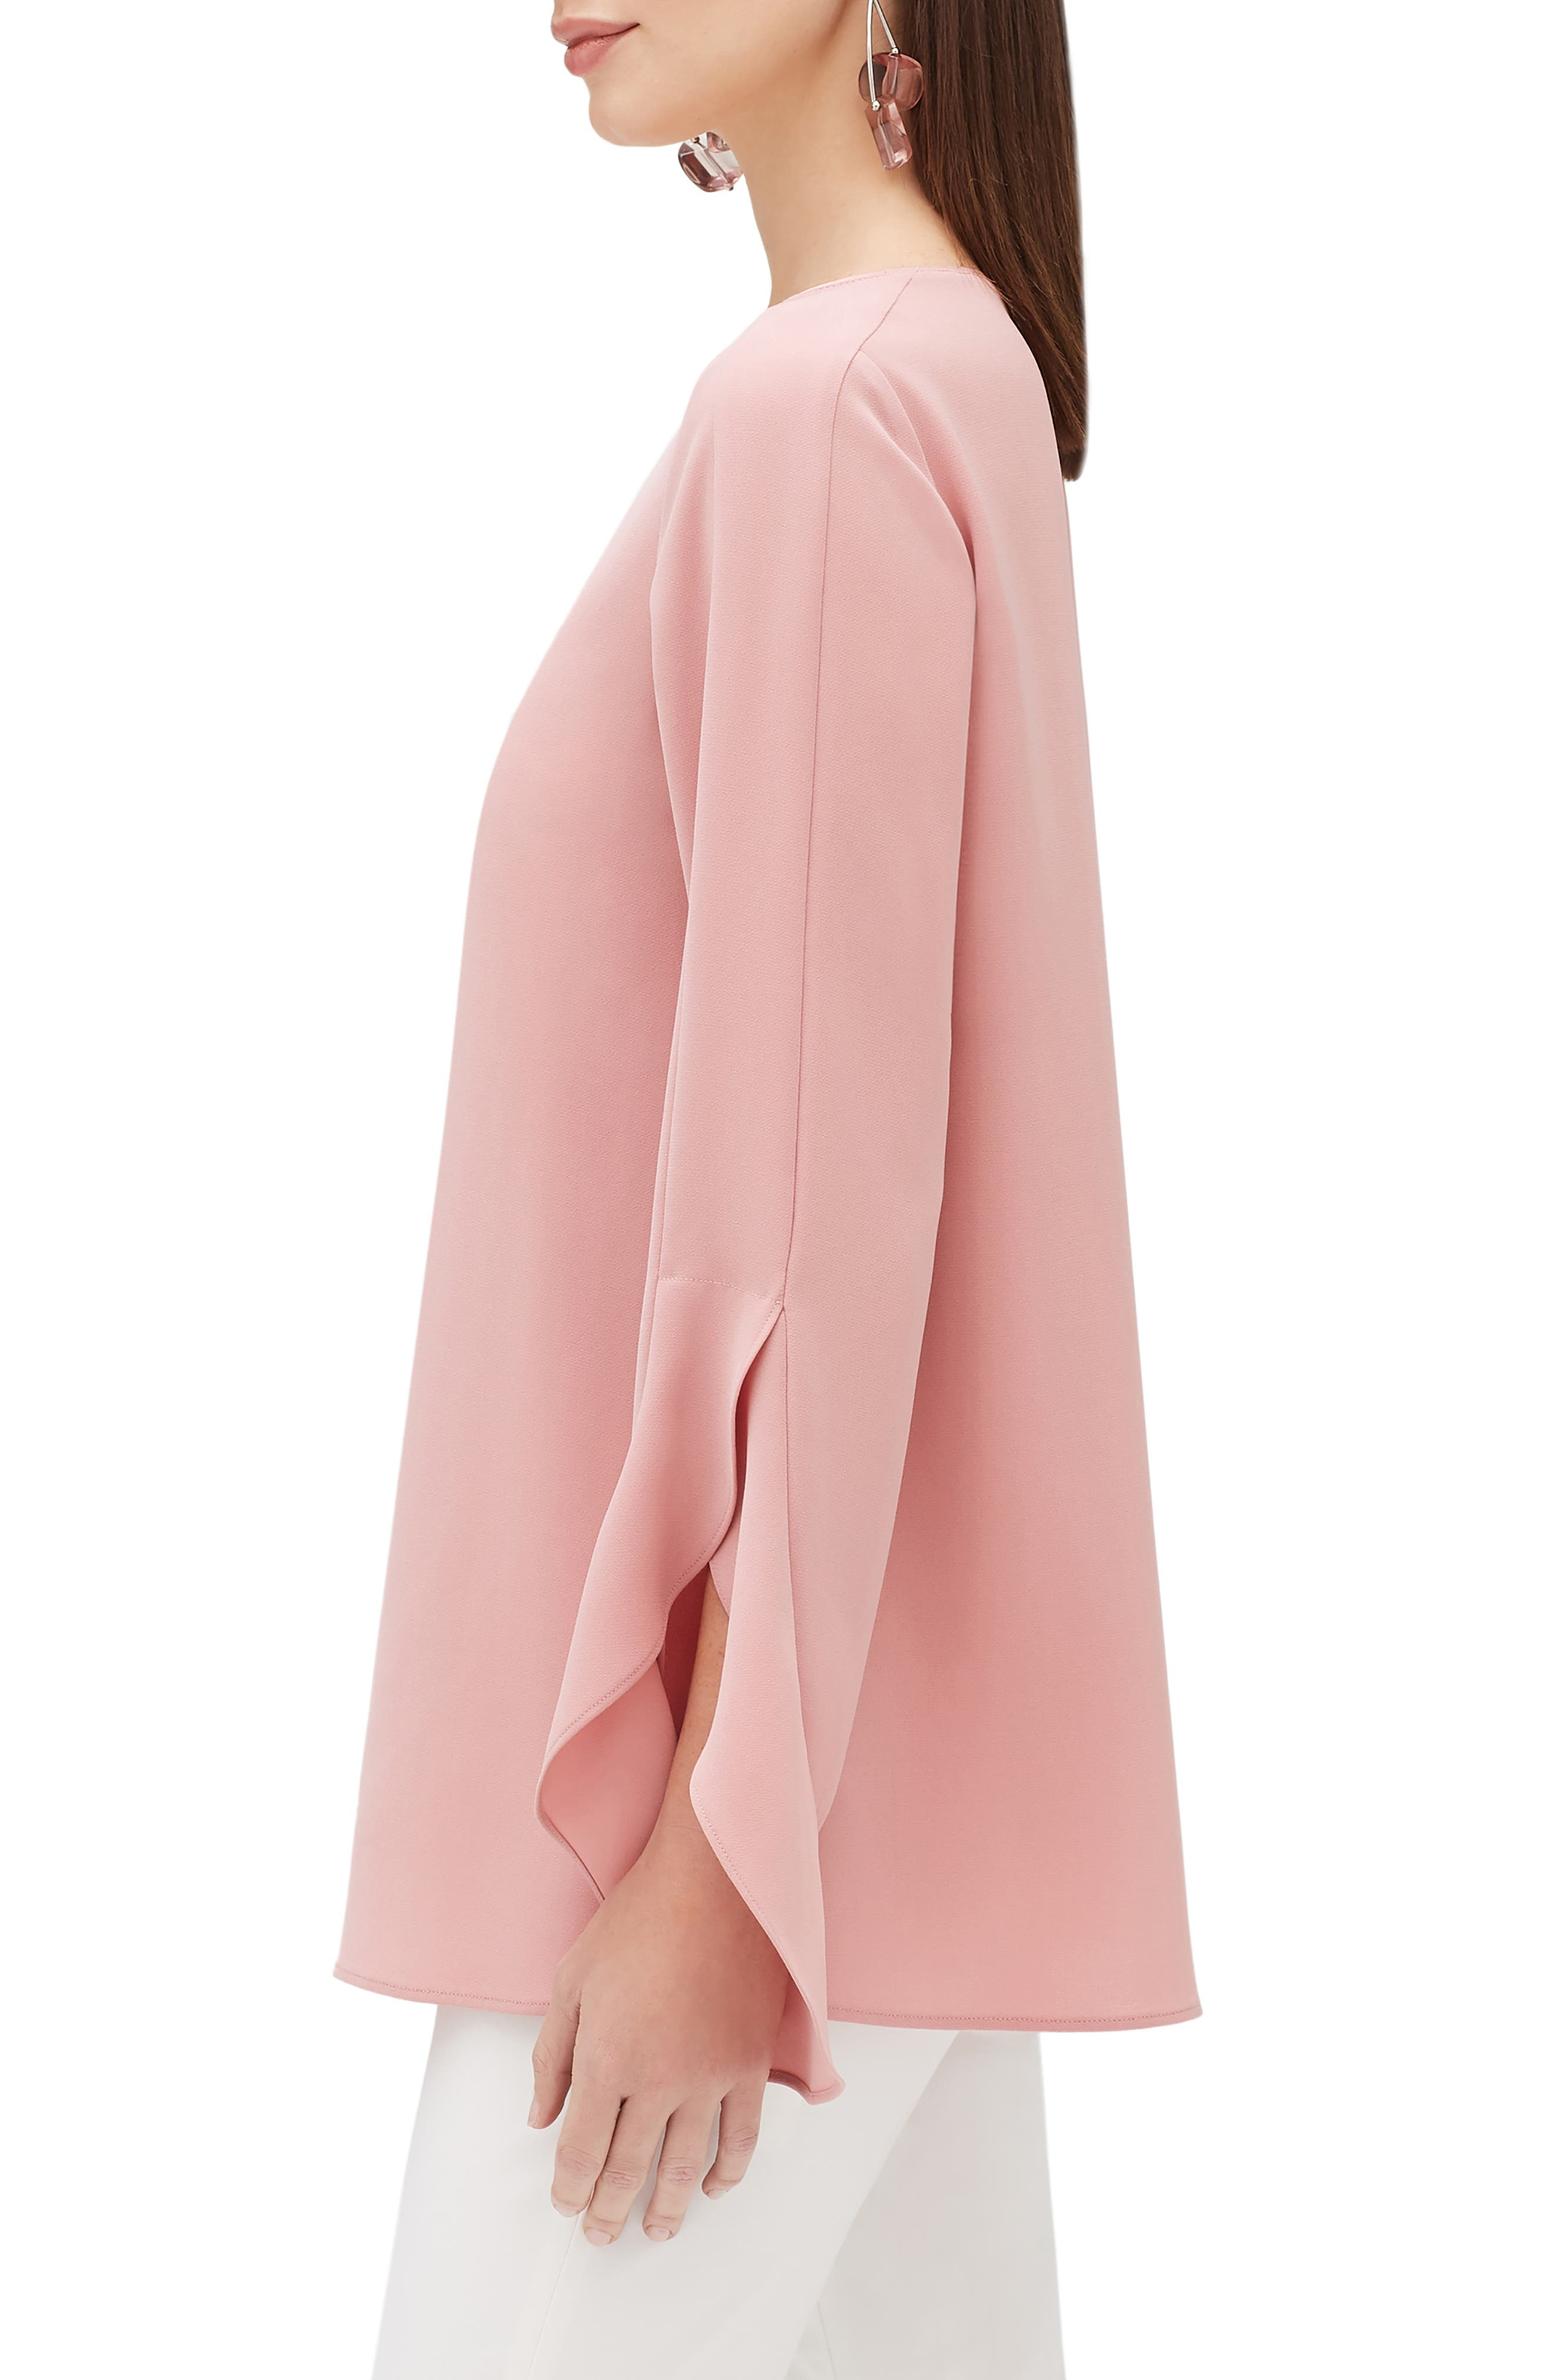 LAFAYETTE 148 NEW YORK,                             Emory Finesse Crepe Blouse,                             Alternate thumbnail 3, color,                             650